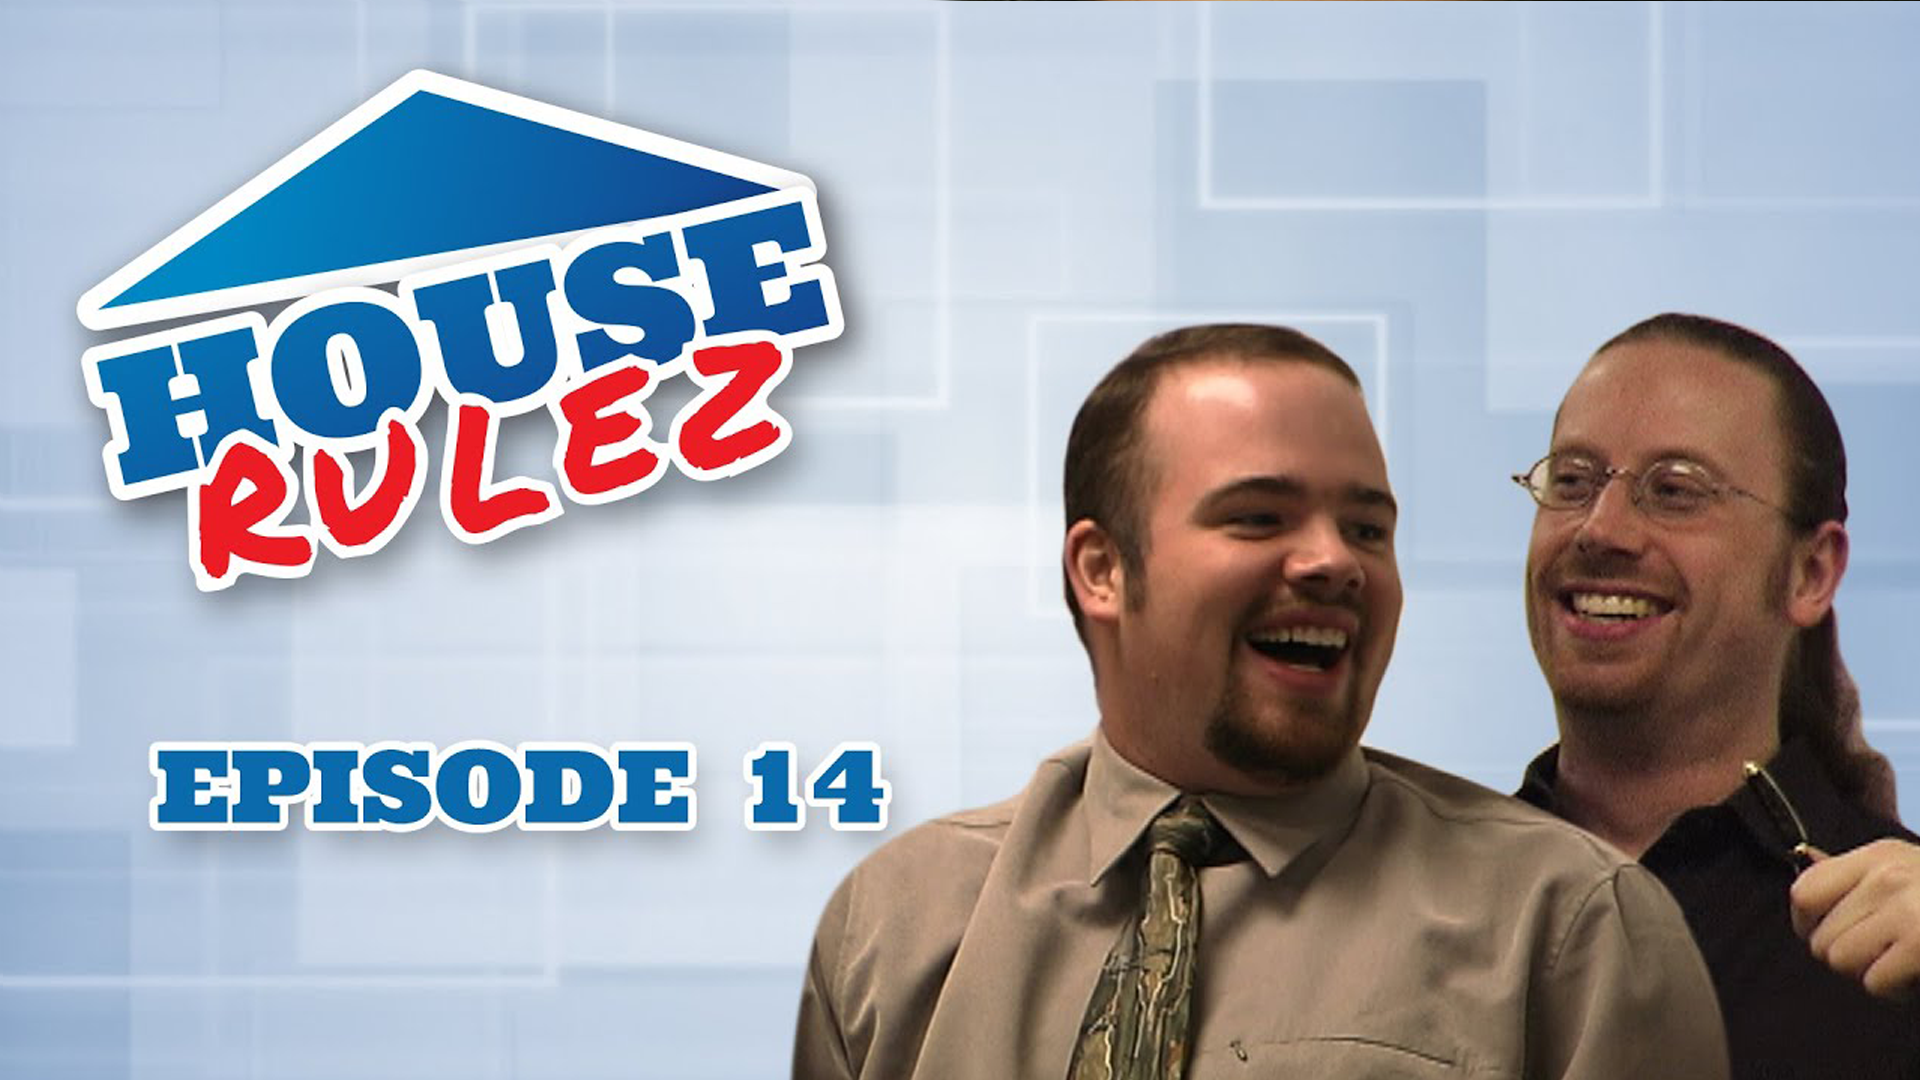 House Rulez Episode 14